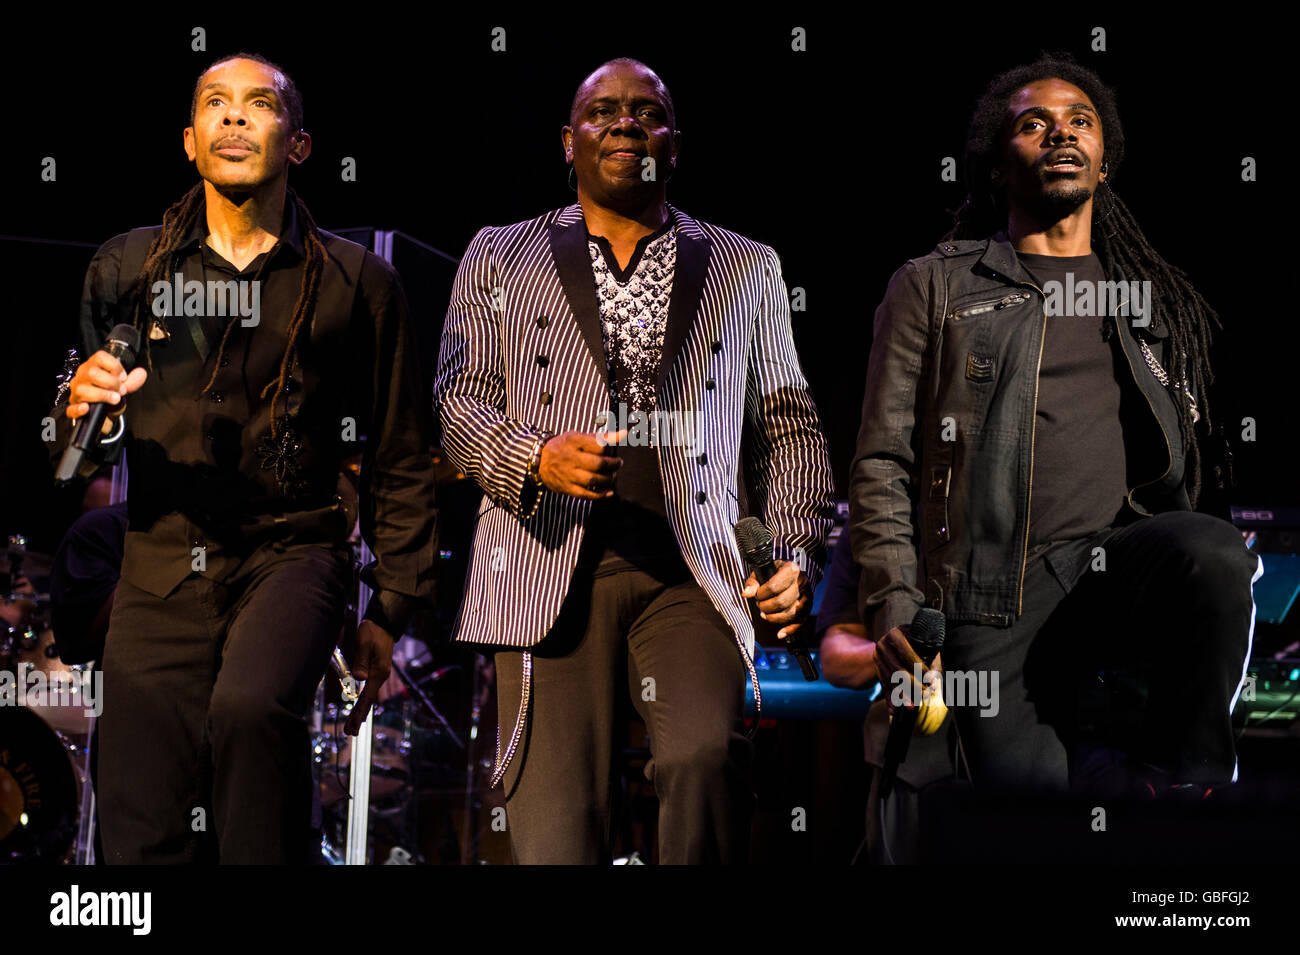 B. David Whitworth (l), Philip Bailey (c) and Philip Bailey Jr (r) of Earth Wind and Fire performing at the O2 Academy, - Stock Image